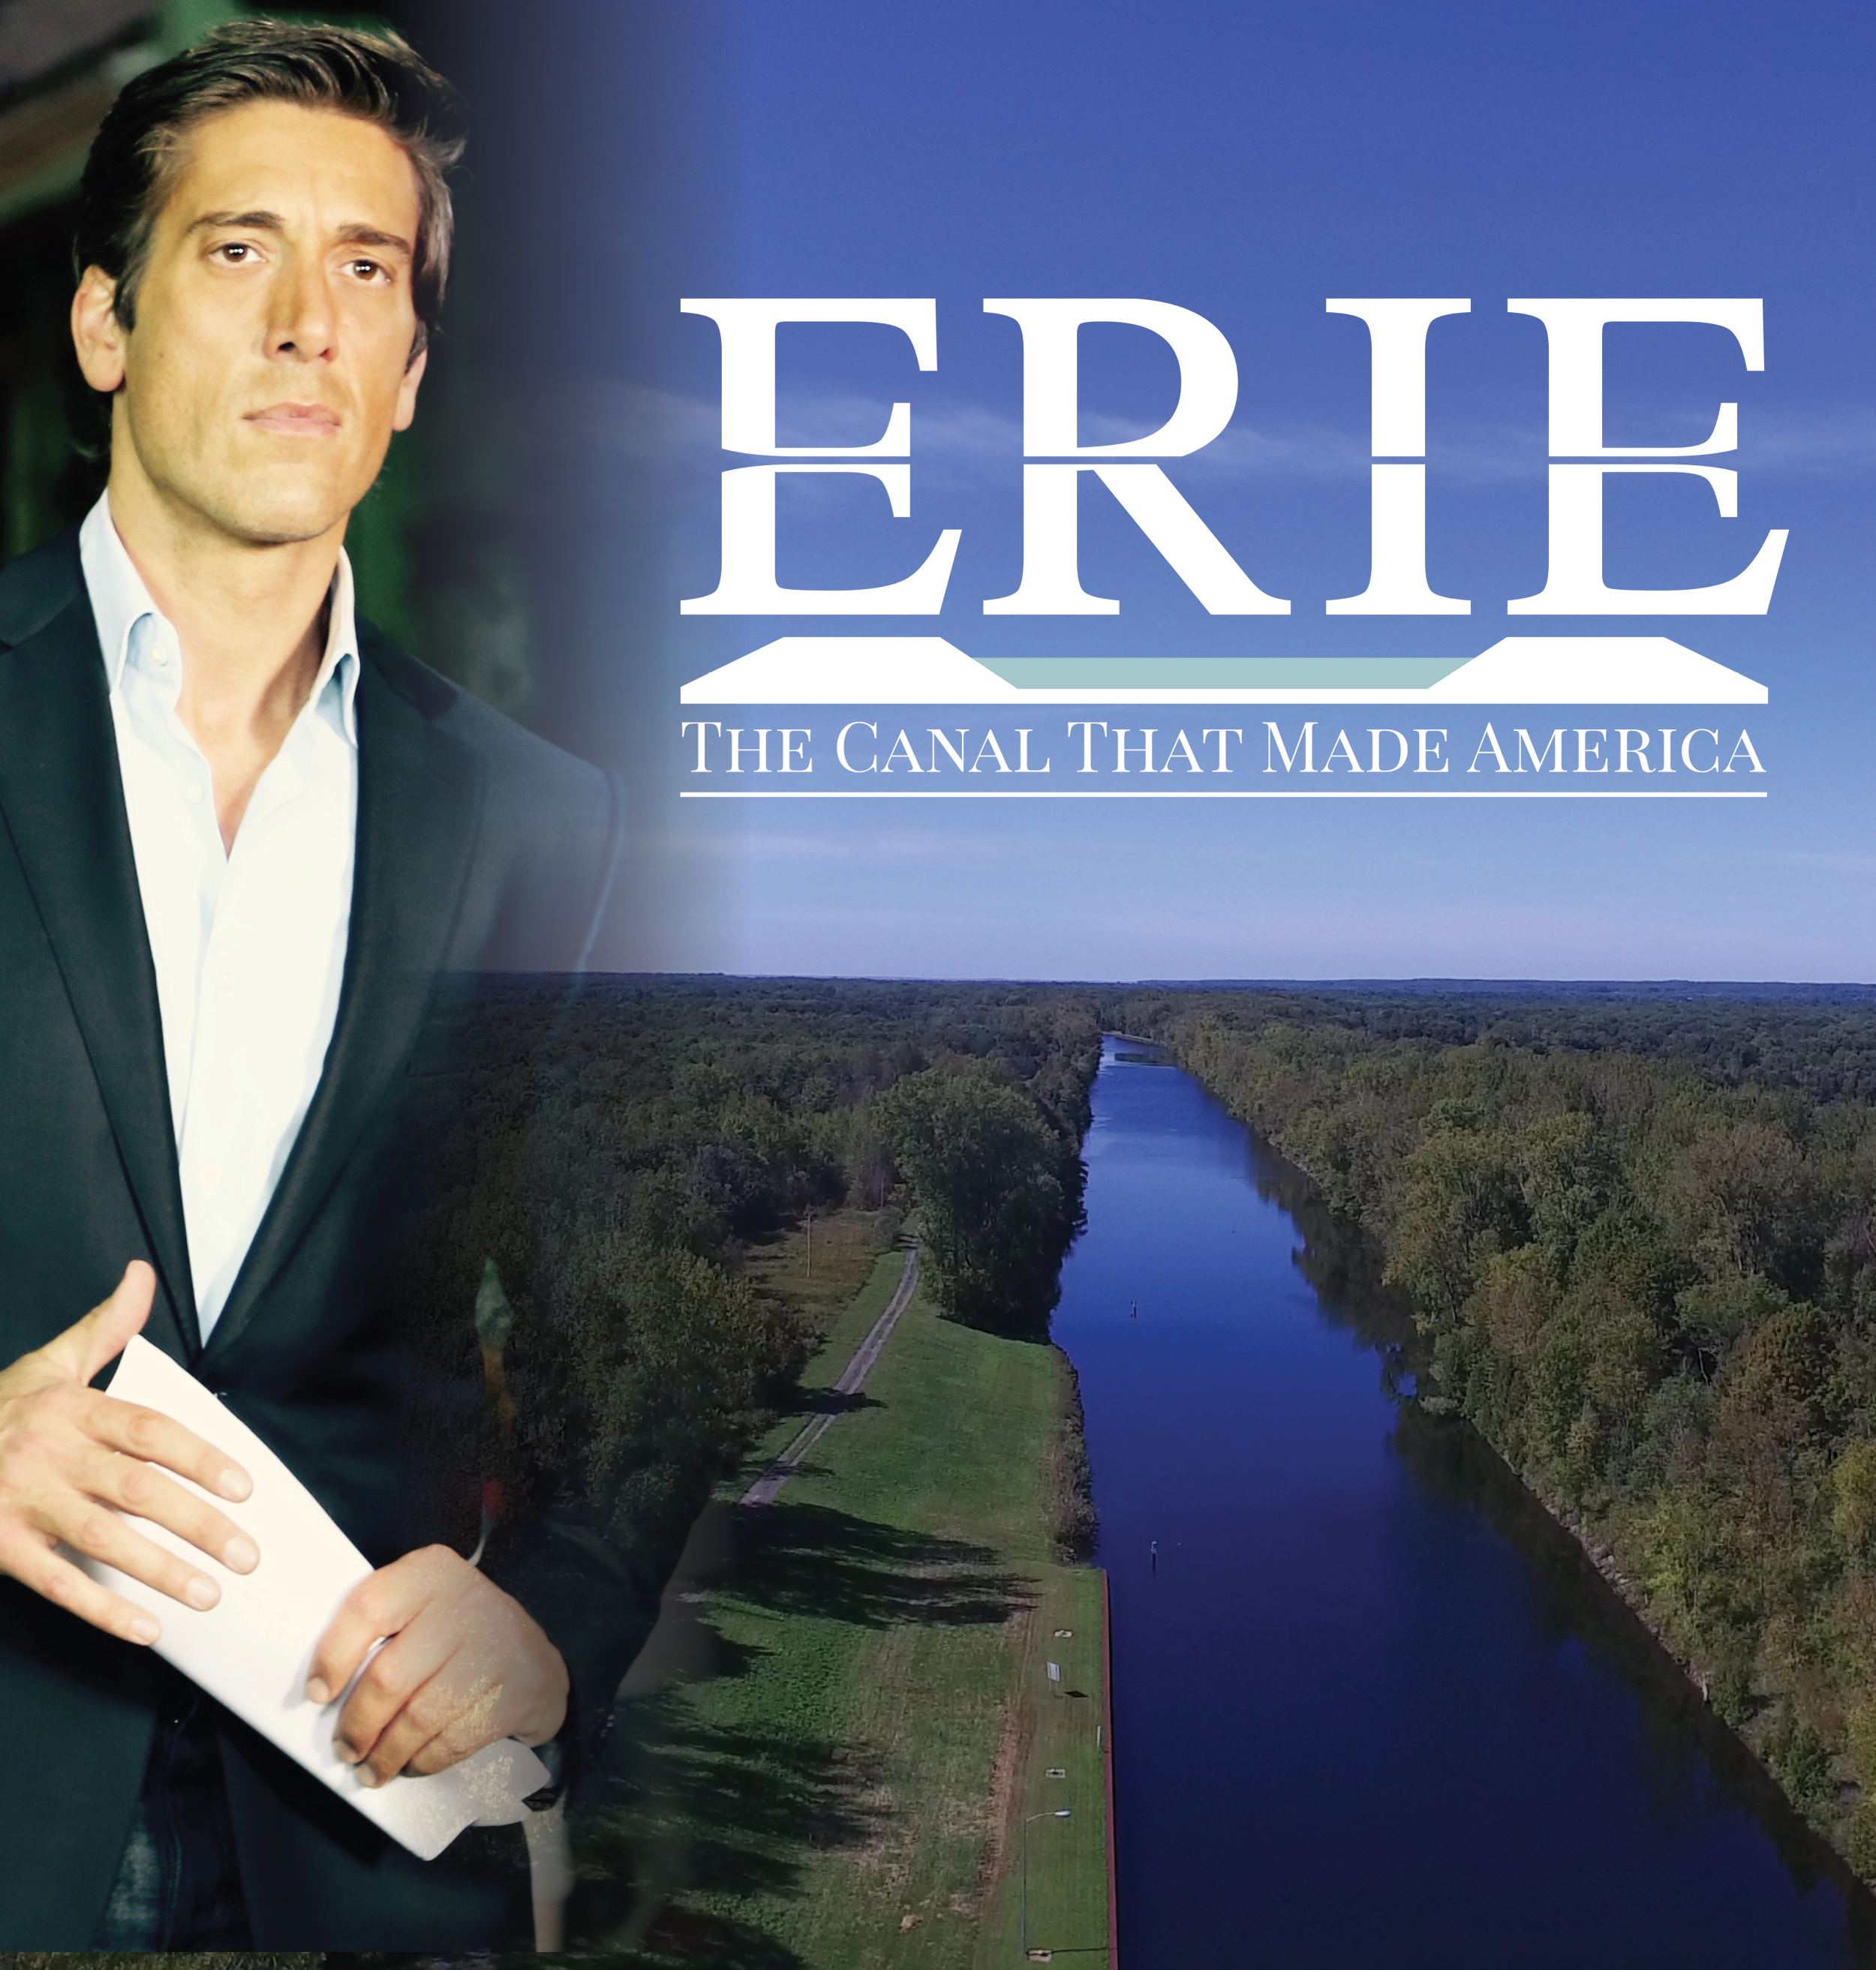 erie_canal_fb_post